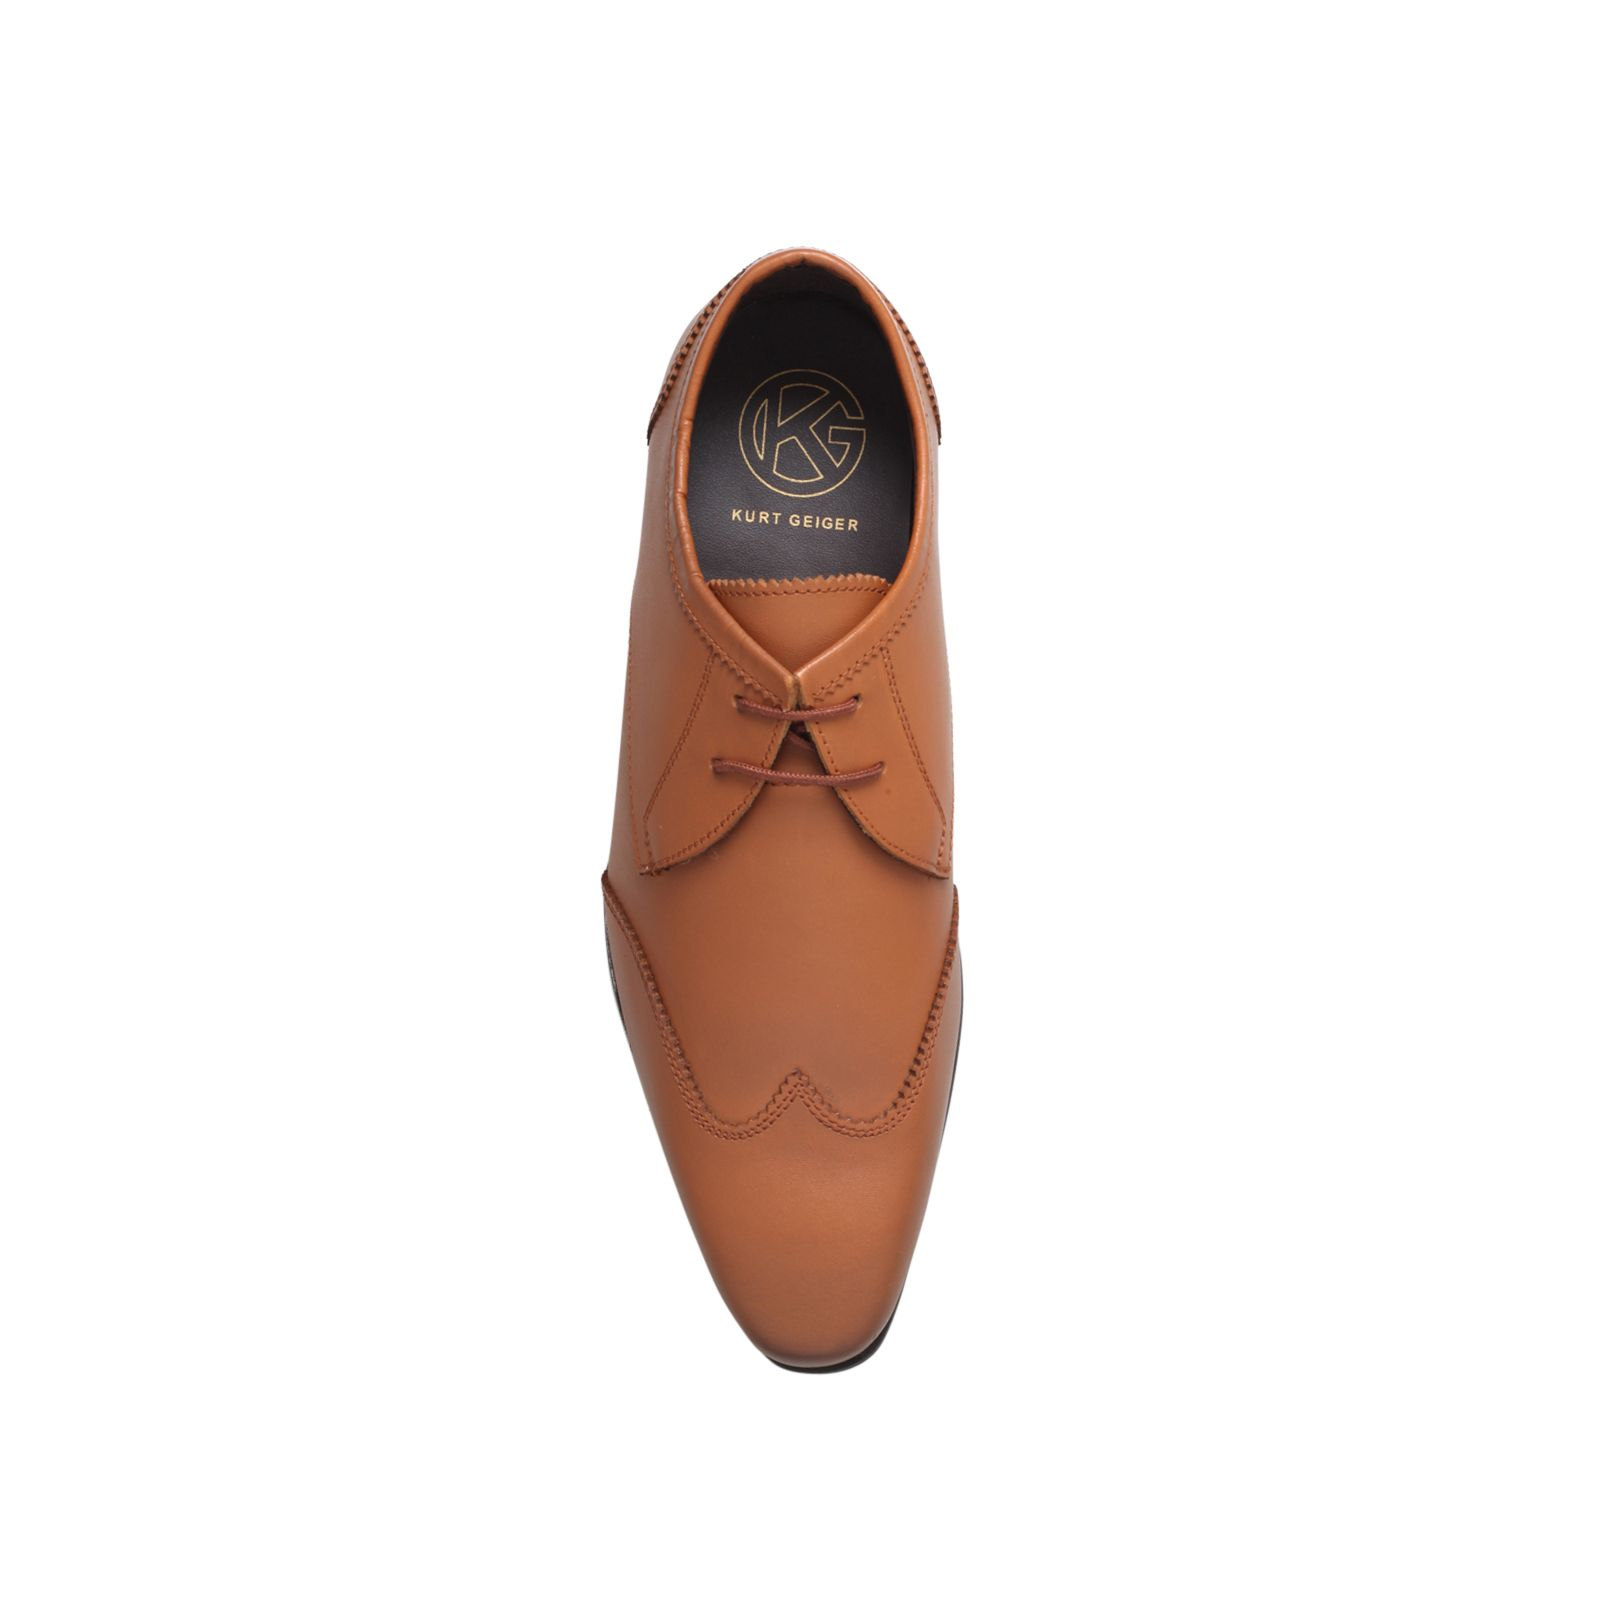 KG by Kurt Geiger Emsworth Lace Up Leather Shoe in Tan (Brown) for Men